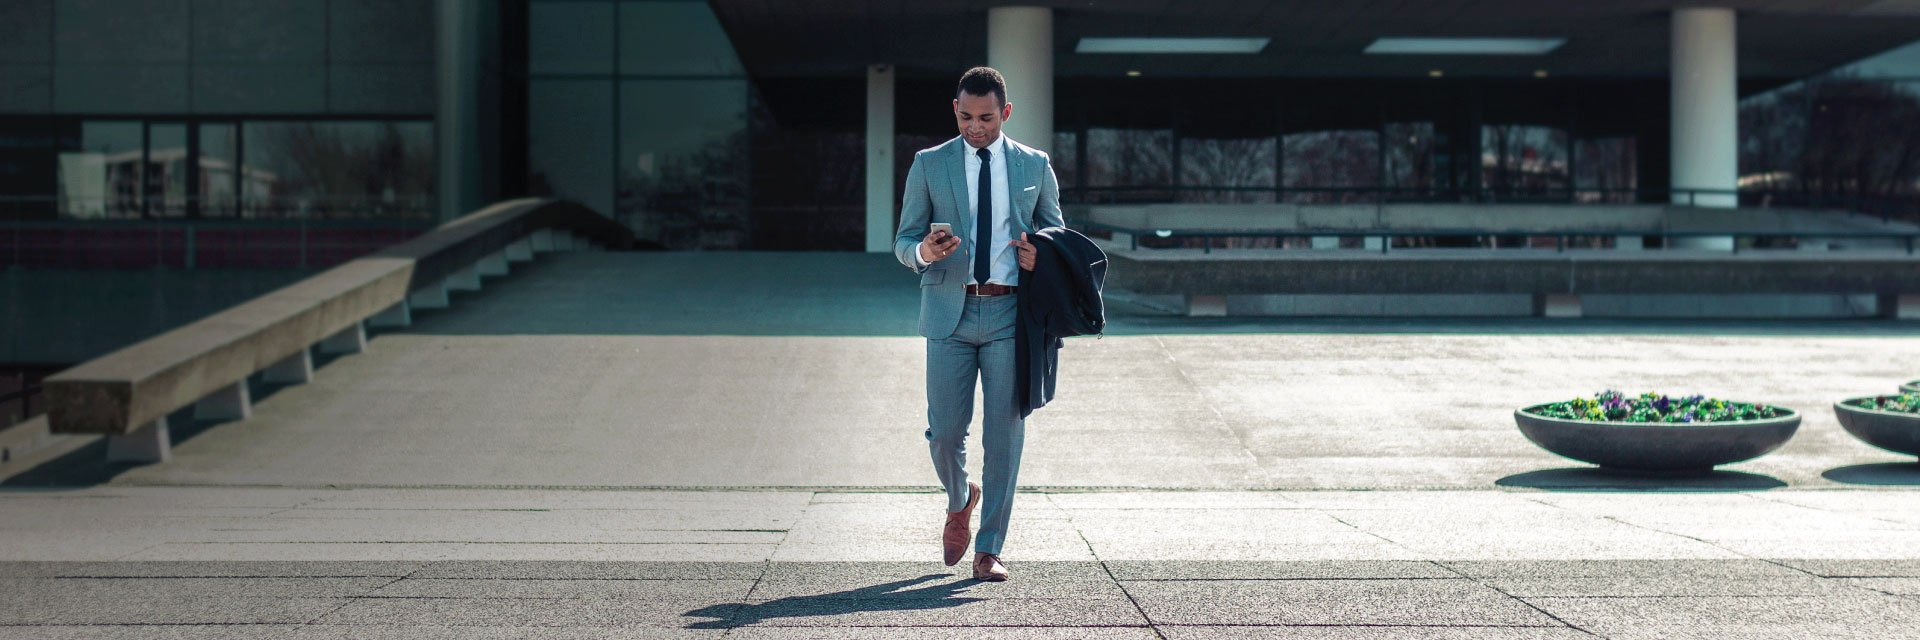 Attorney-walking-out-of-office-on-smartphone